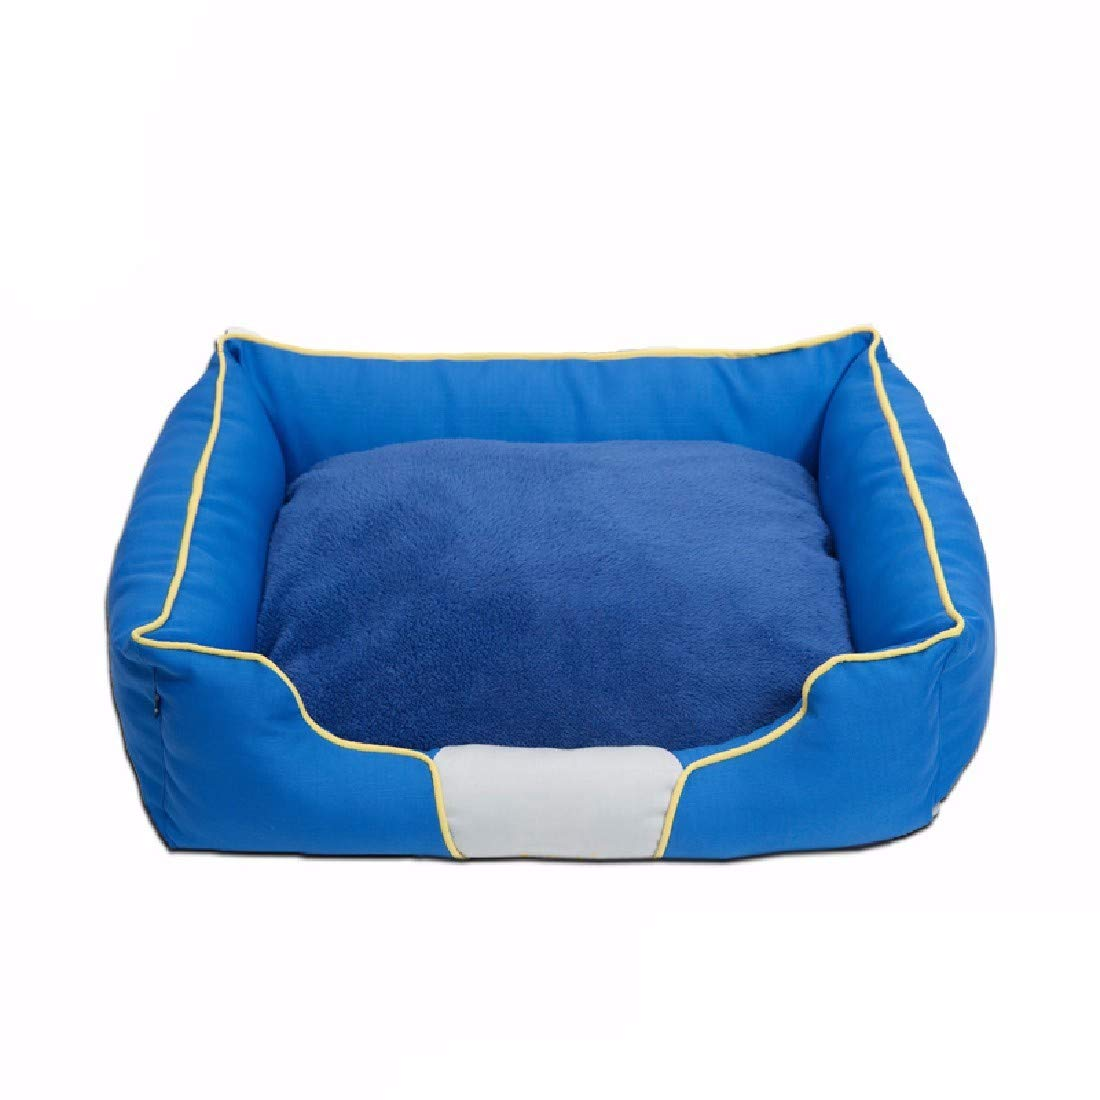 bluee Pet Dog Cat House Bed Doghouse washable four seasons small dog dog house large dog pet products,bluee